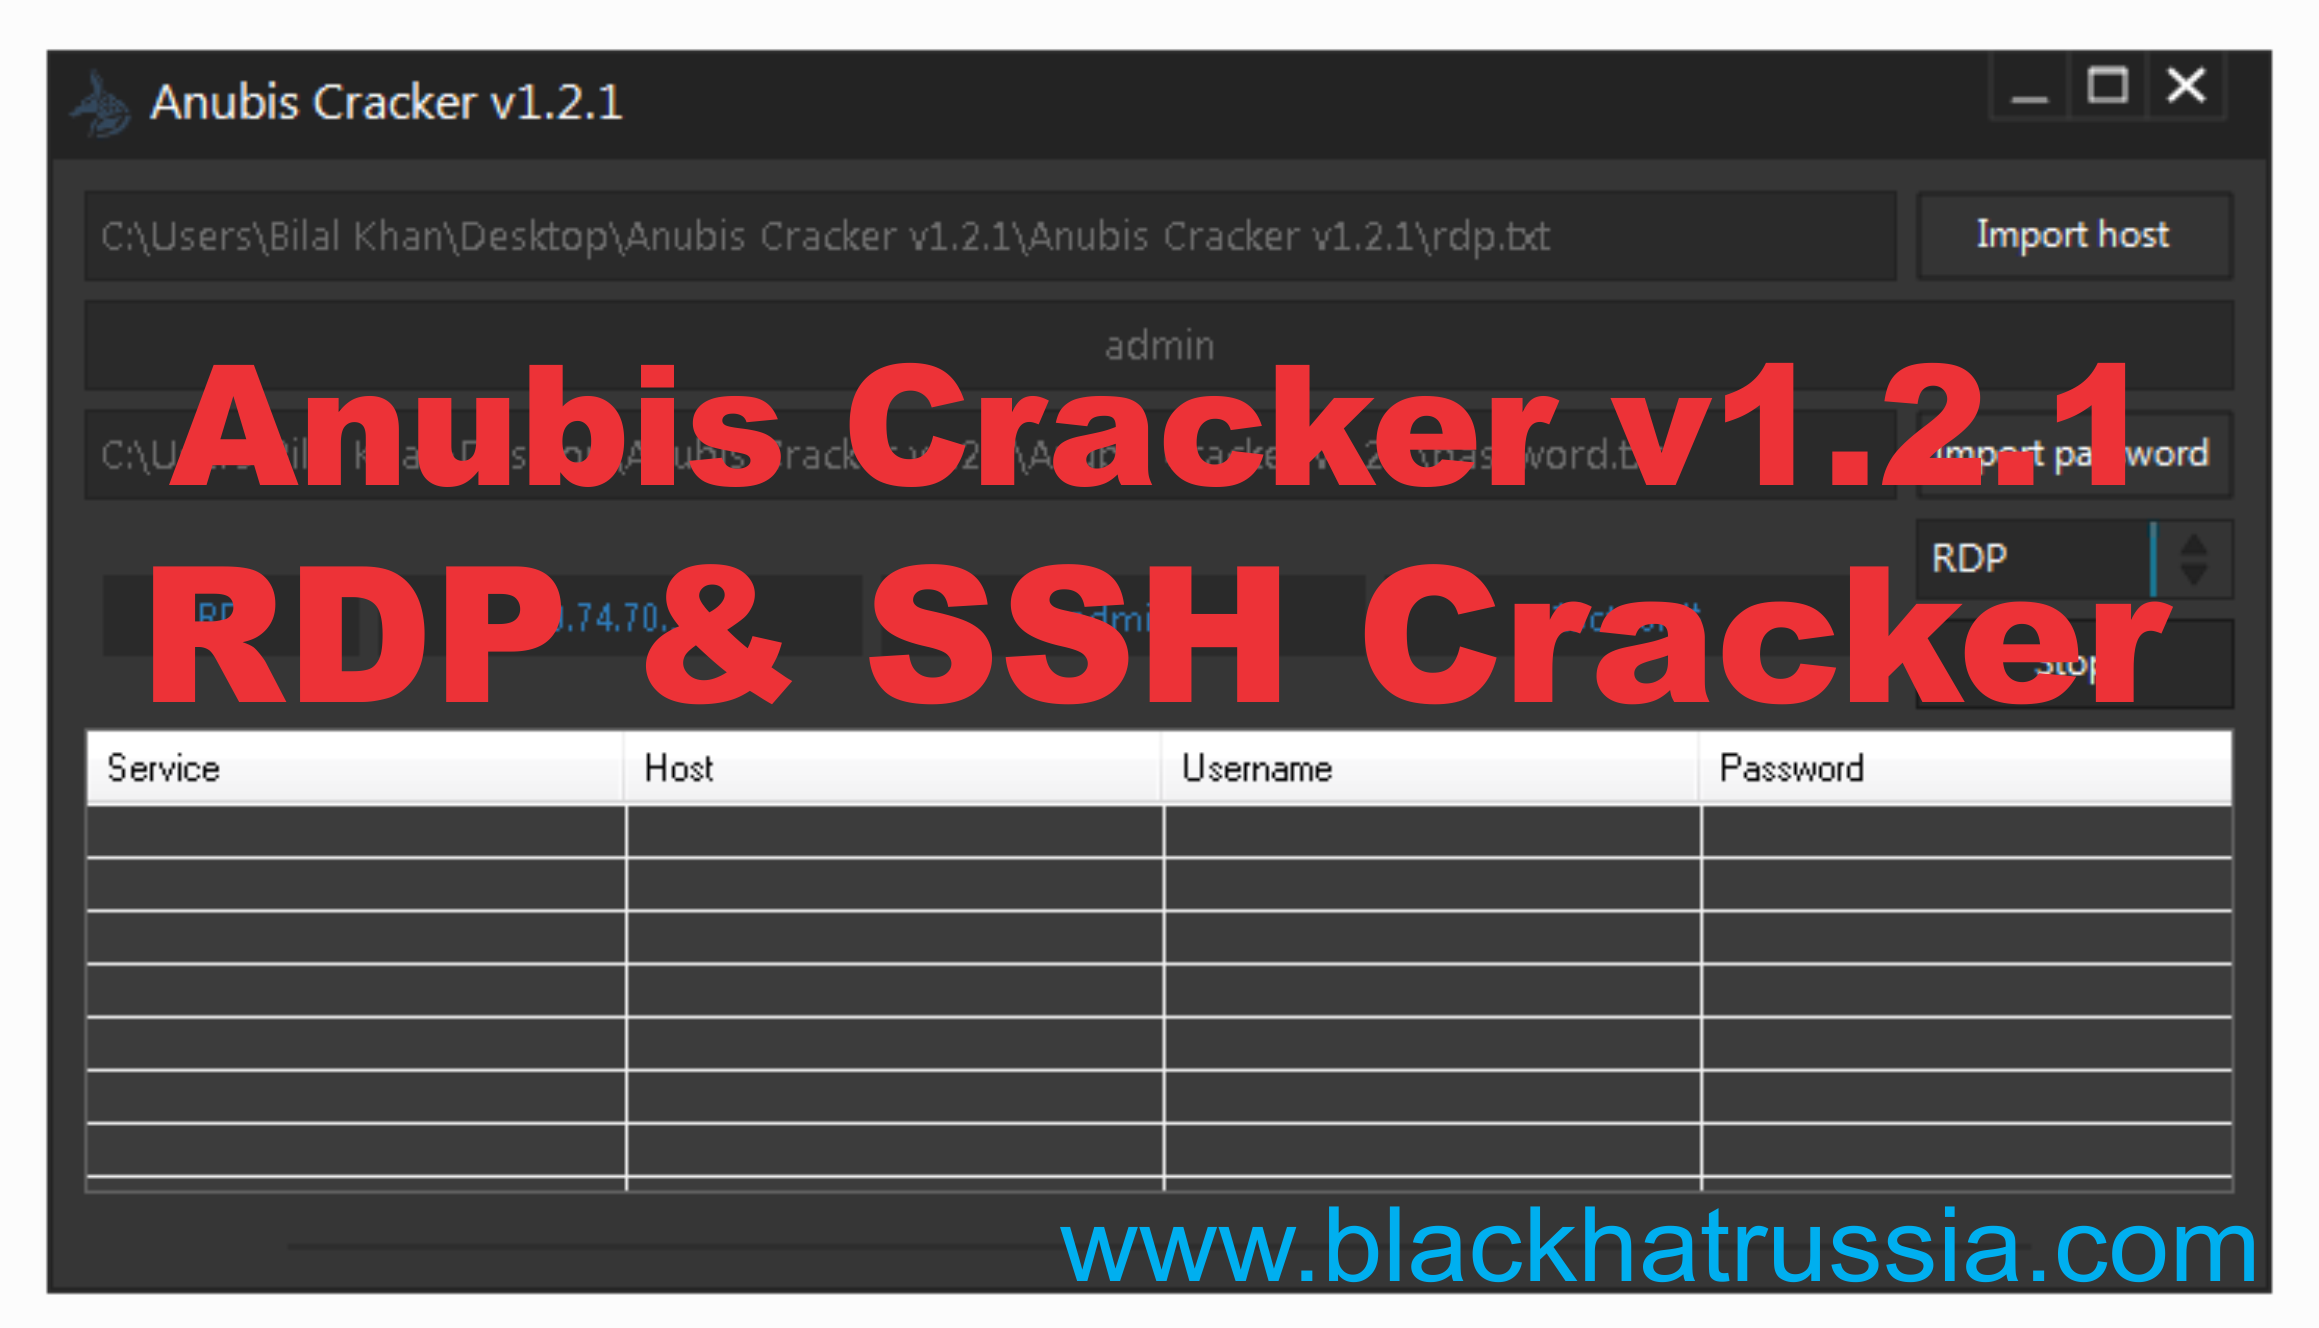 ANUBIS CRACKER V.1.2.1 BRUTE FORCE SSH/RDP